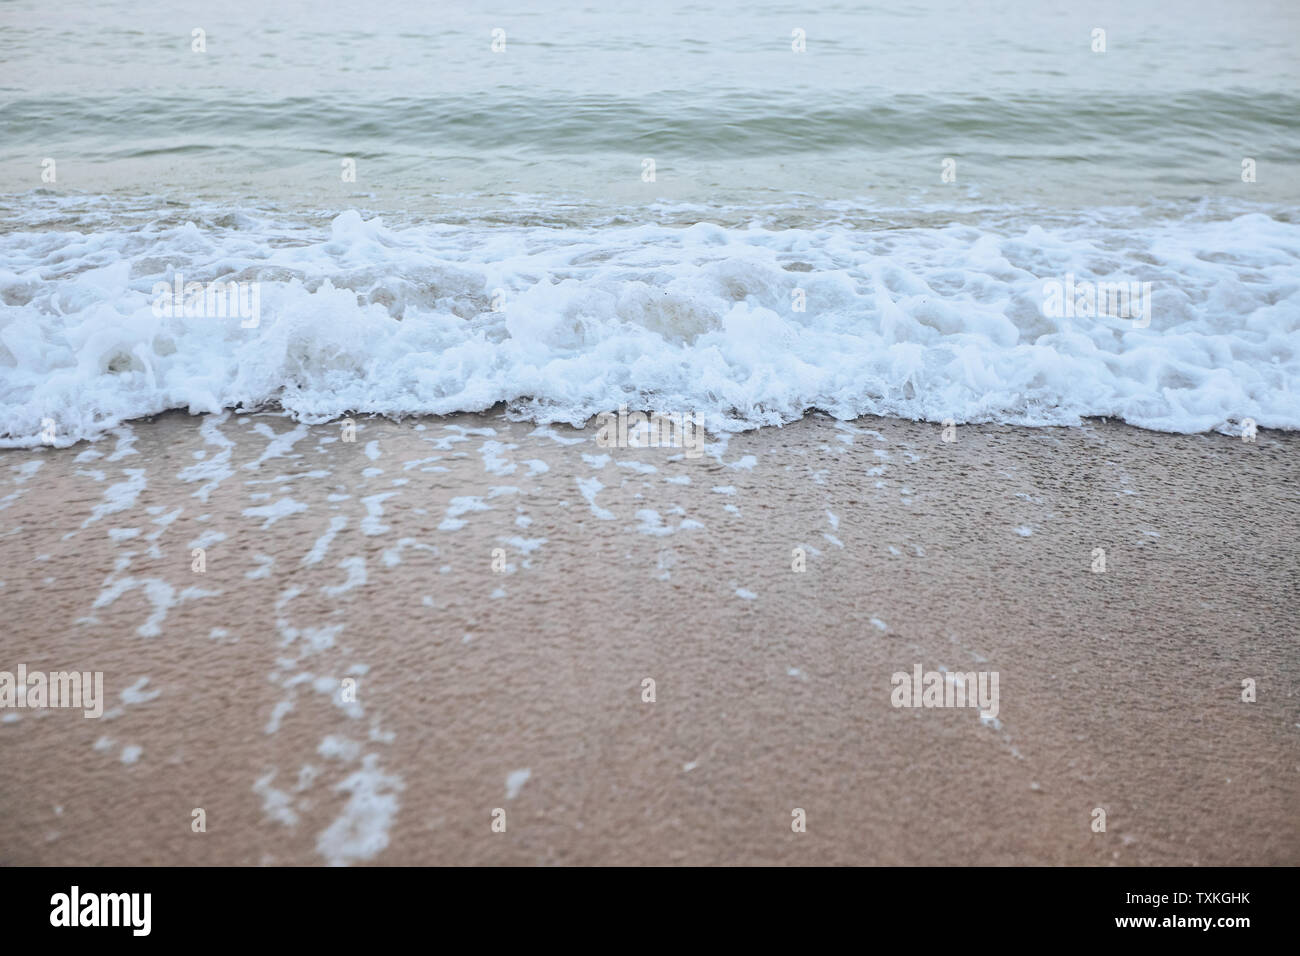 Fine beach and wawes under the summer sun - Stock Image